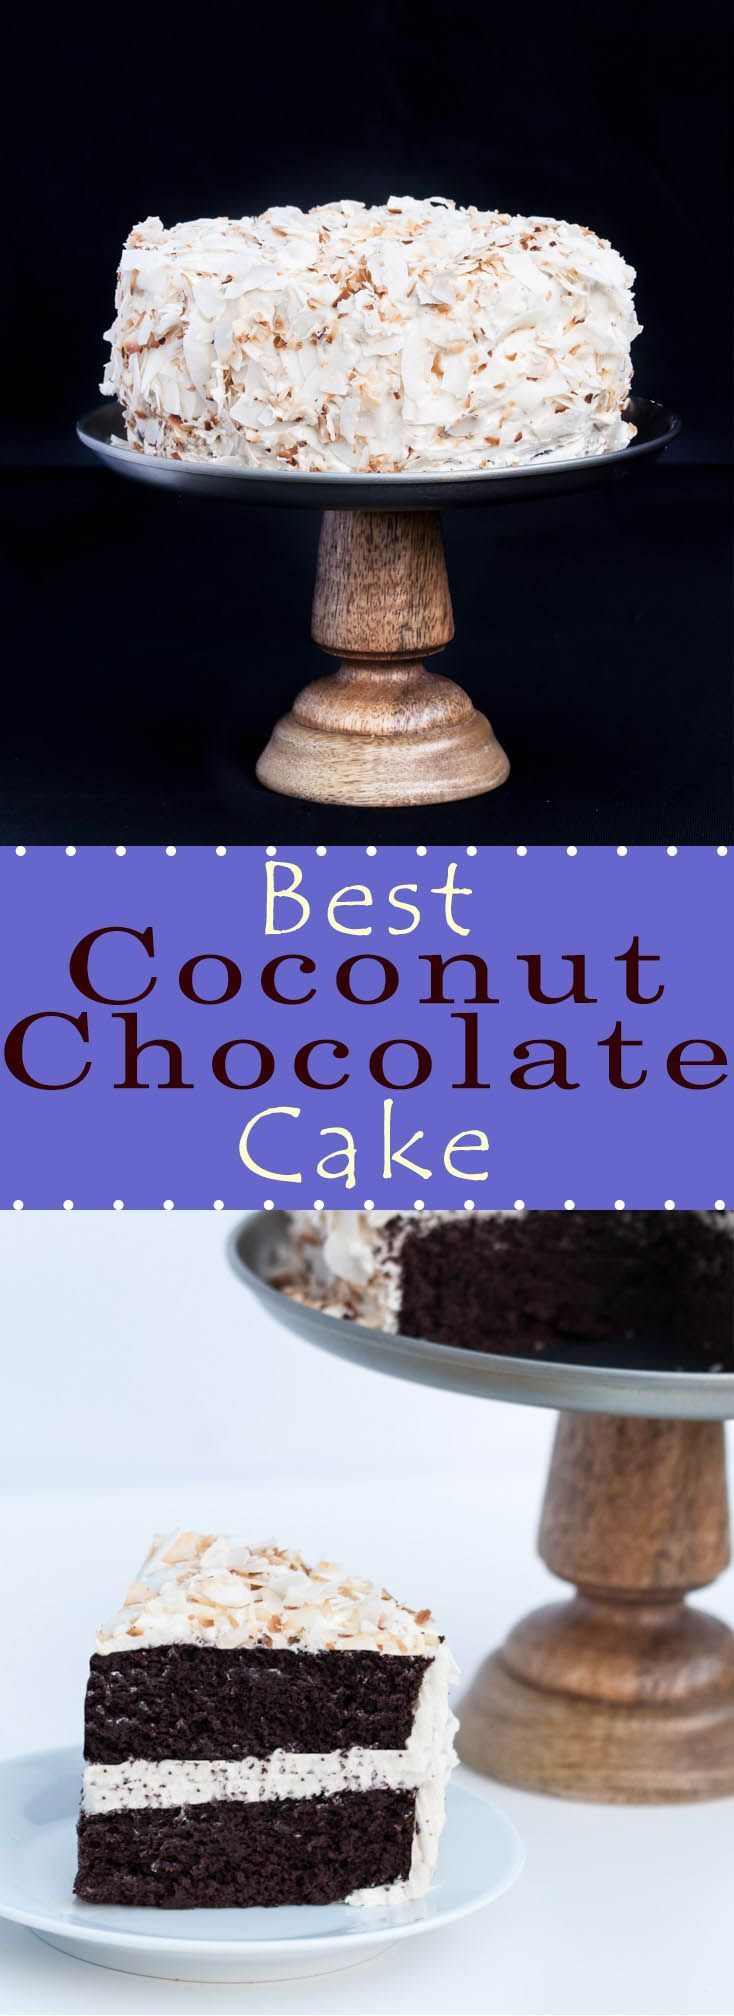 This is the BEST Coconut Chocolate Cake Recipe with a Vanilla Coconut Oil Frosting that also happens to be vegan (dairy-free, eggless), Super delicious, moist, fluffy, airy and comes together surprisingly easy. Perfect for your next Birthday dessert! /// VeganFamilyRecipes.com /// #cakes #chocolate